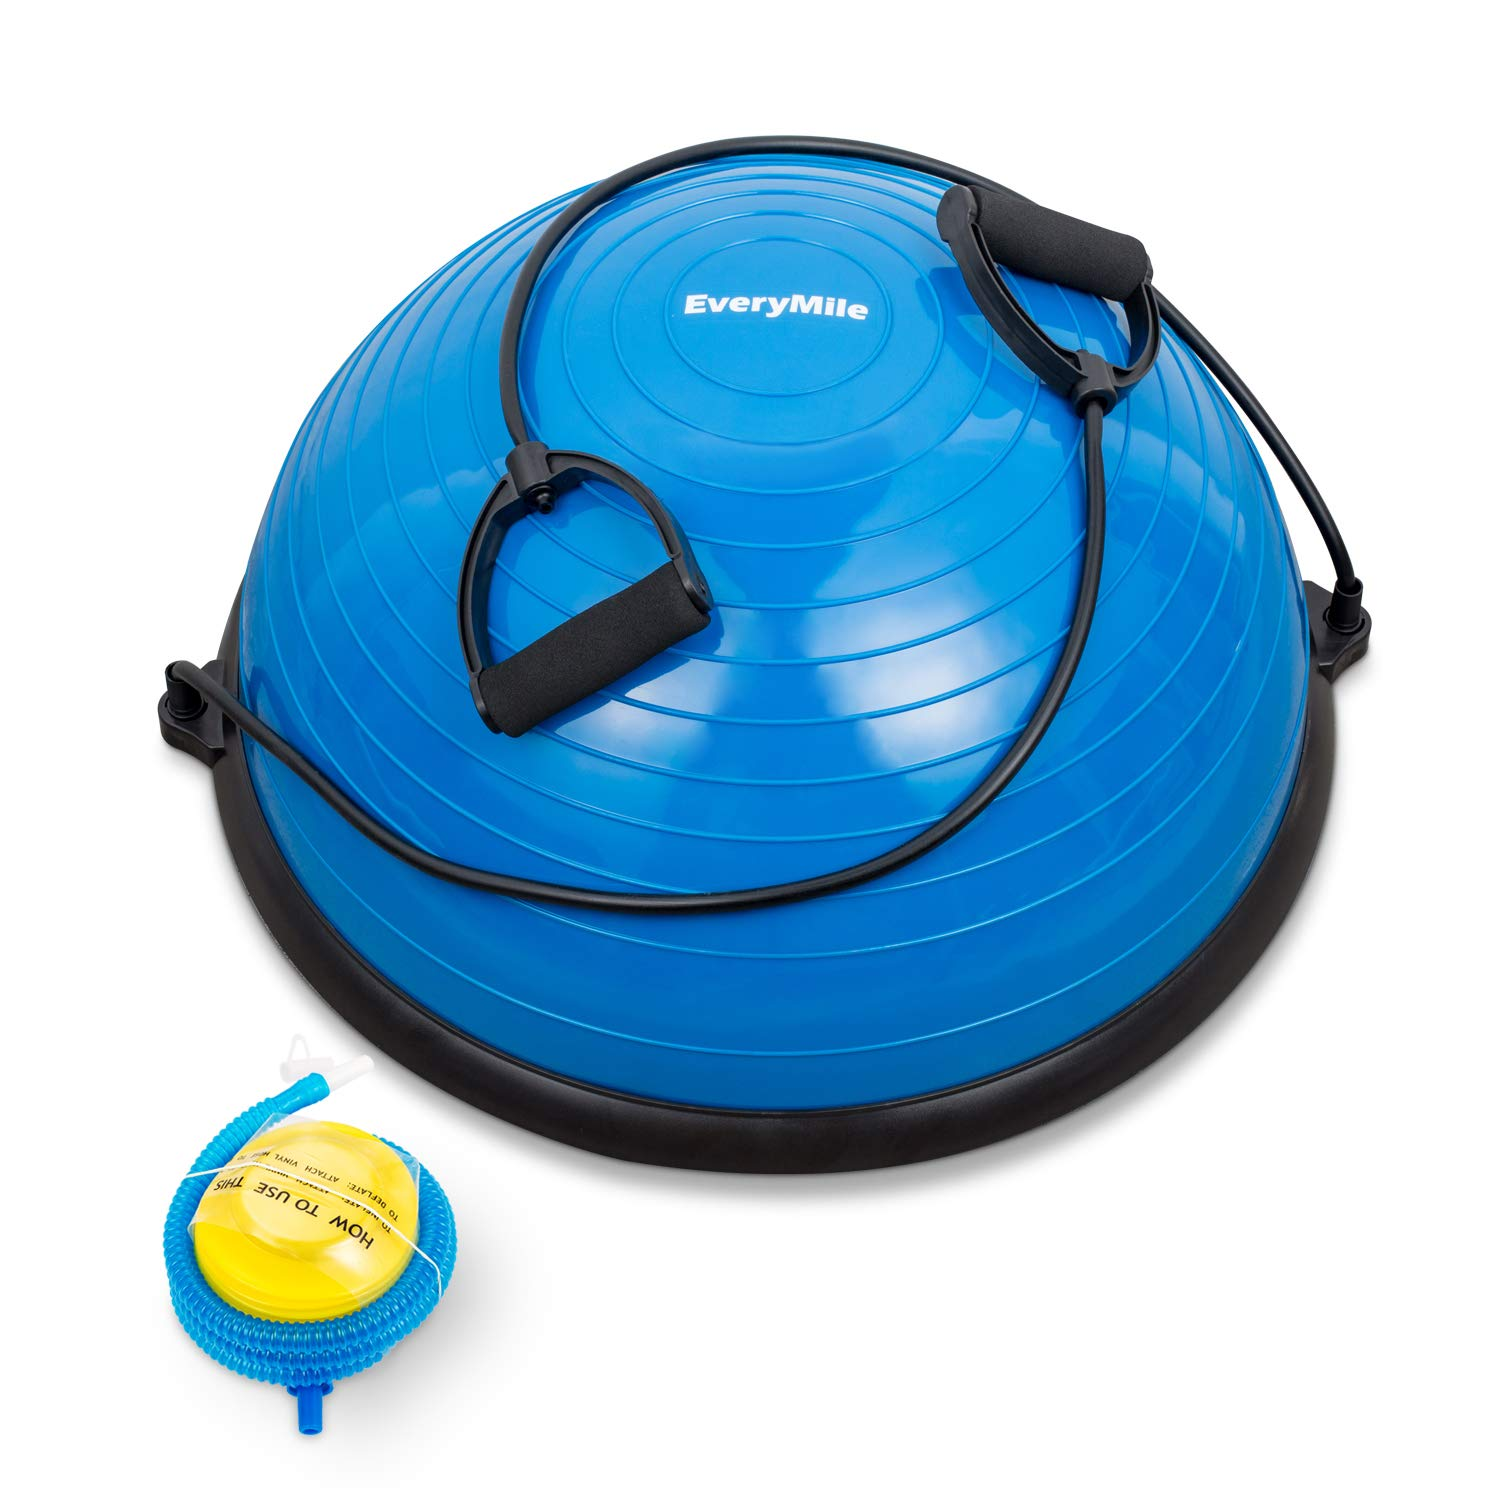 EveryMile Half Ball Balance Trainer Stability Yoga Exercise Ball with Resistance Bands & Pump for Home Gym Core Training Yoga Fitness Ab Strength Workouts, 23 inch Anti-Skid Surface (Blue)